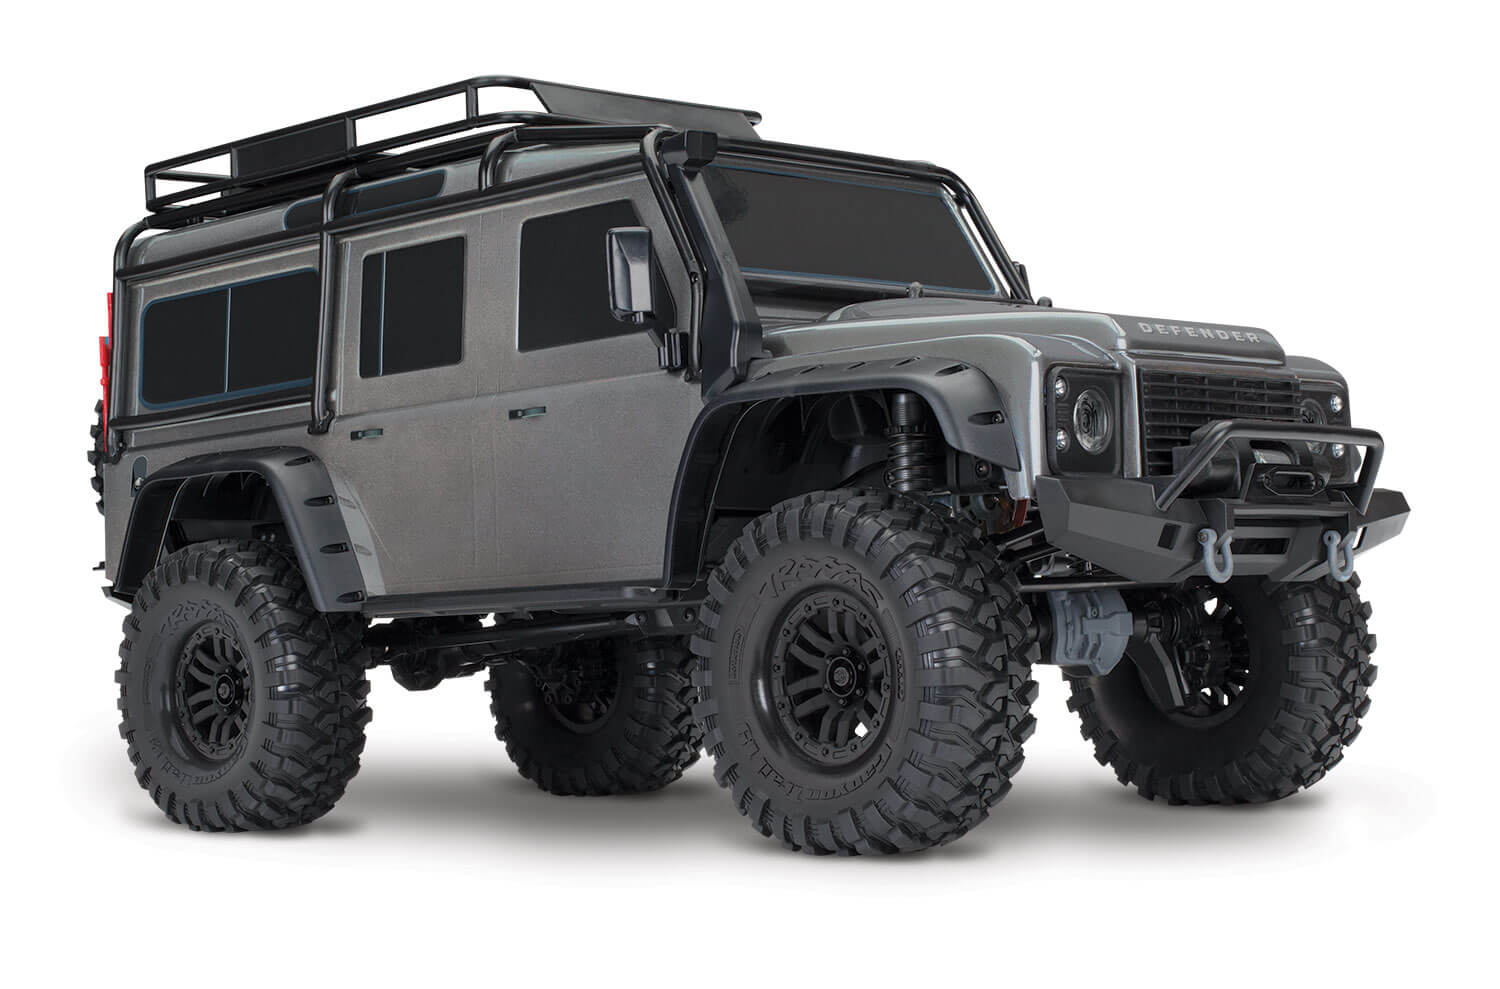 traxxas trx 4 crawler land rover defender 110 green. Black Bedroom Furniture Sets. Home Design Ideas